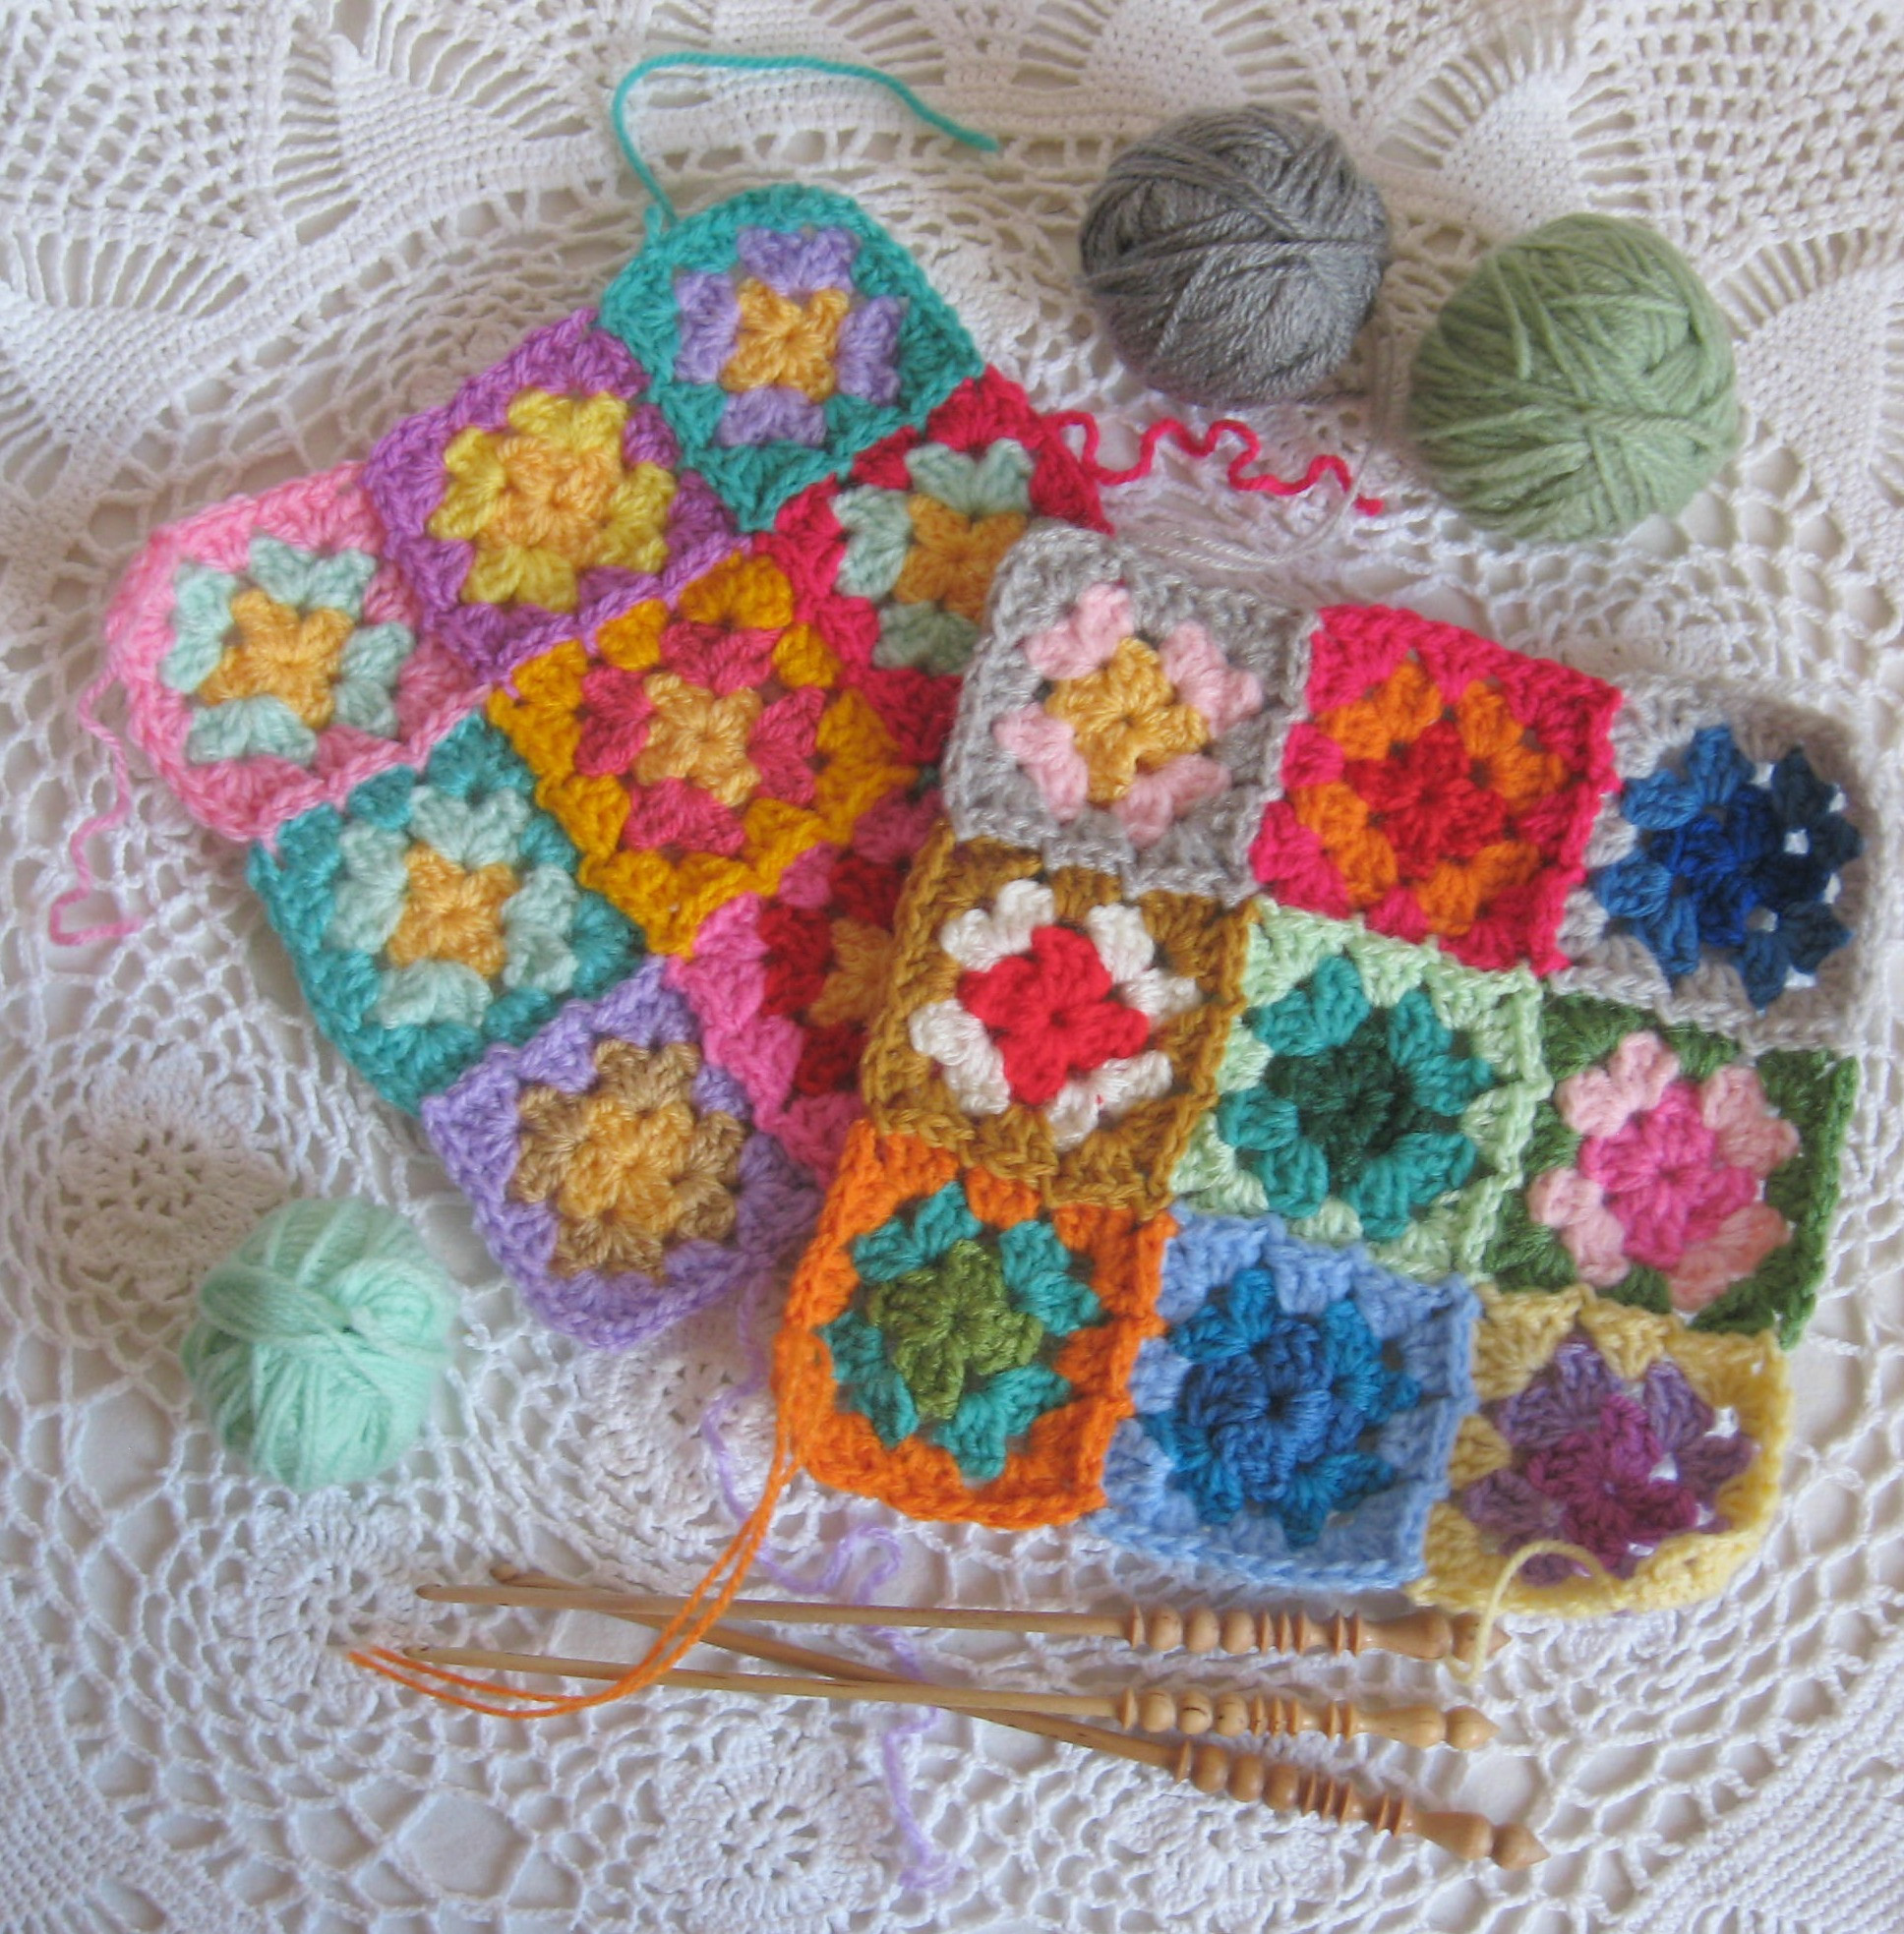 Inspirational Crocheting to Her the Granny Square Patches and Crochet Squares together Of Lovely 43 Ideas Crochet Squares together